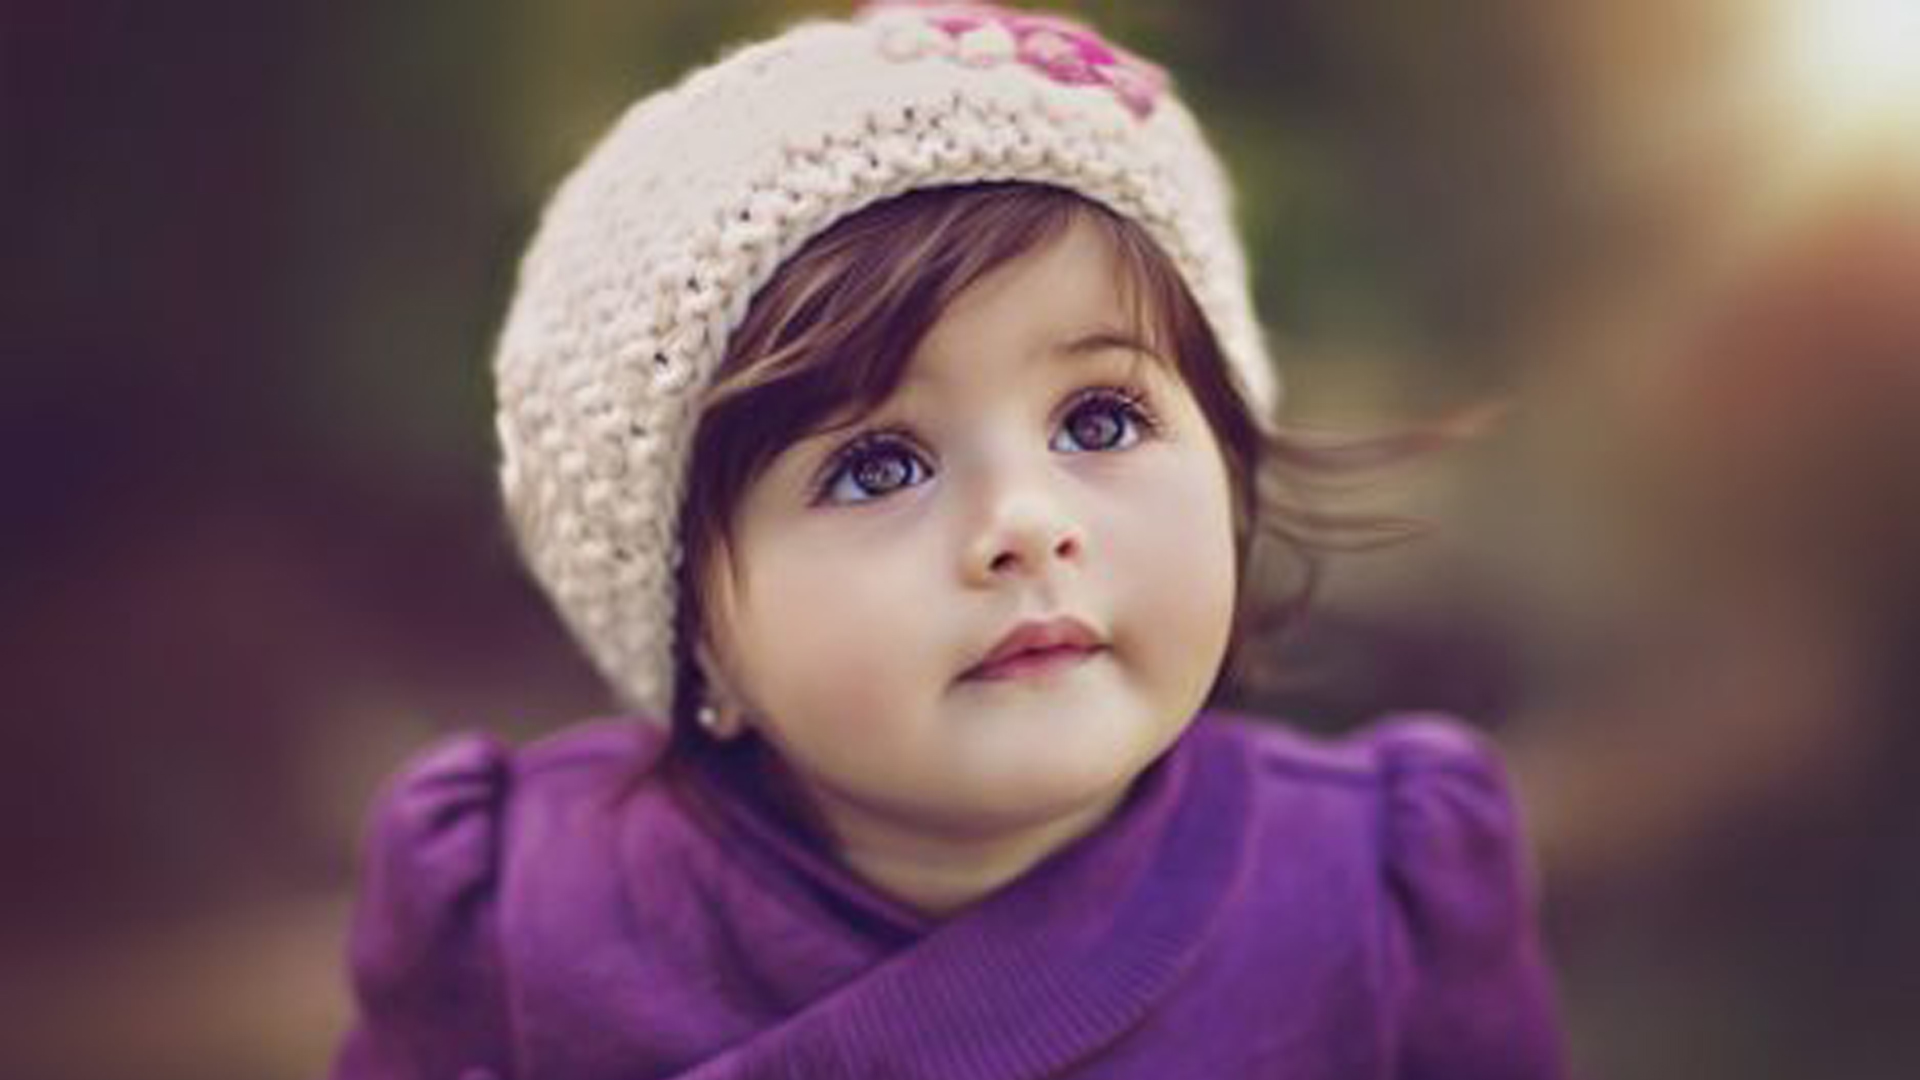 baby pics & hd images 2018 | cute images & wallpapers free download